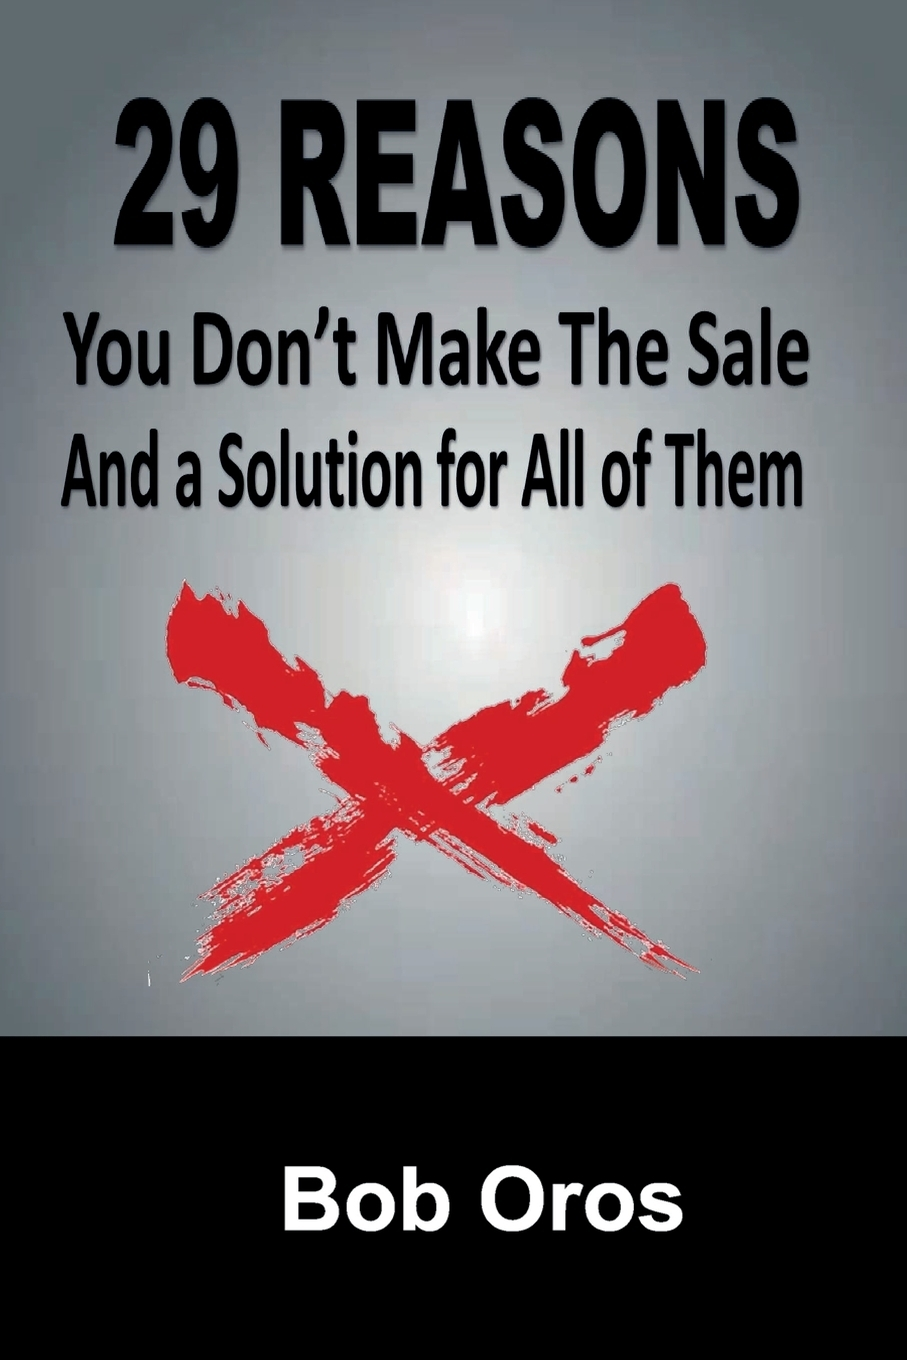 Bob Oros. 29 Reasons You Don't Make the Sale and a Solution for All of Them